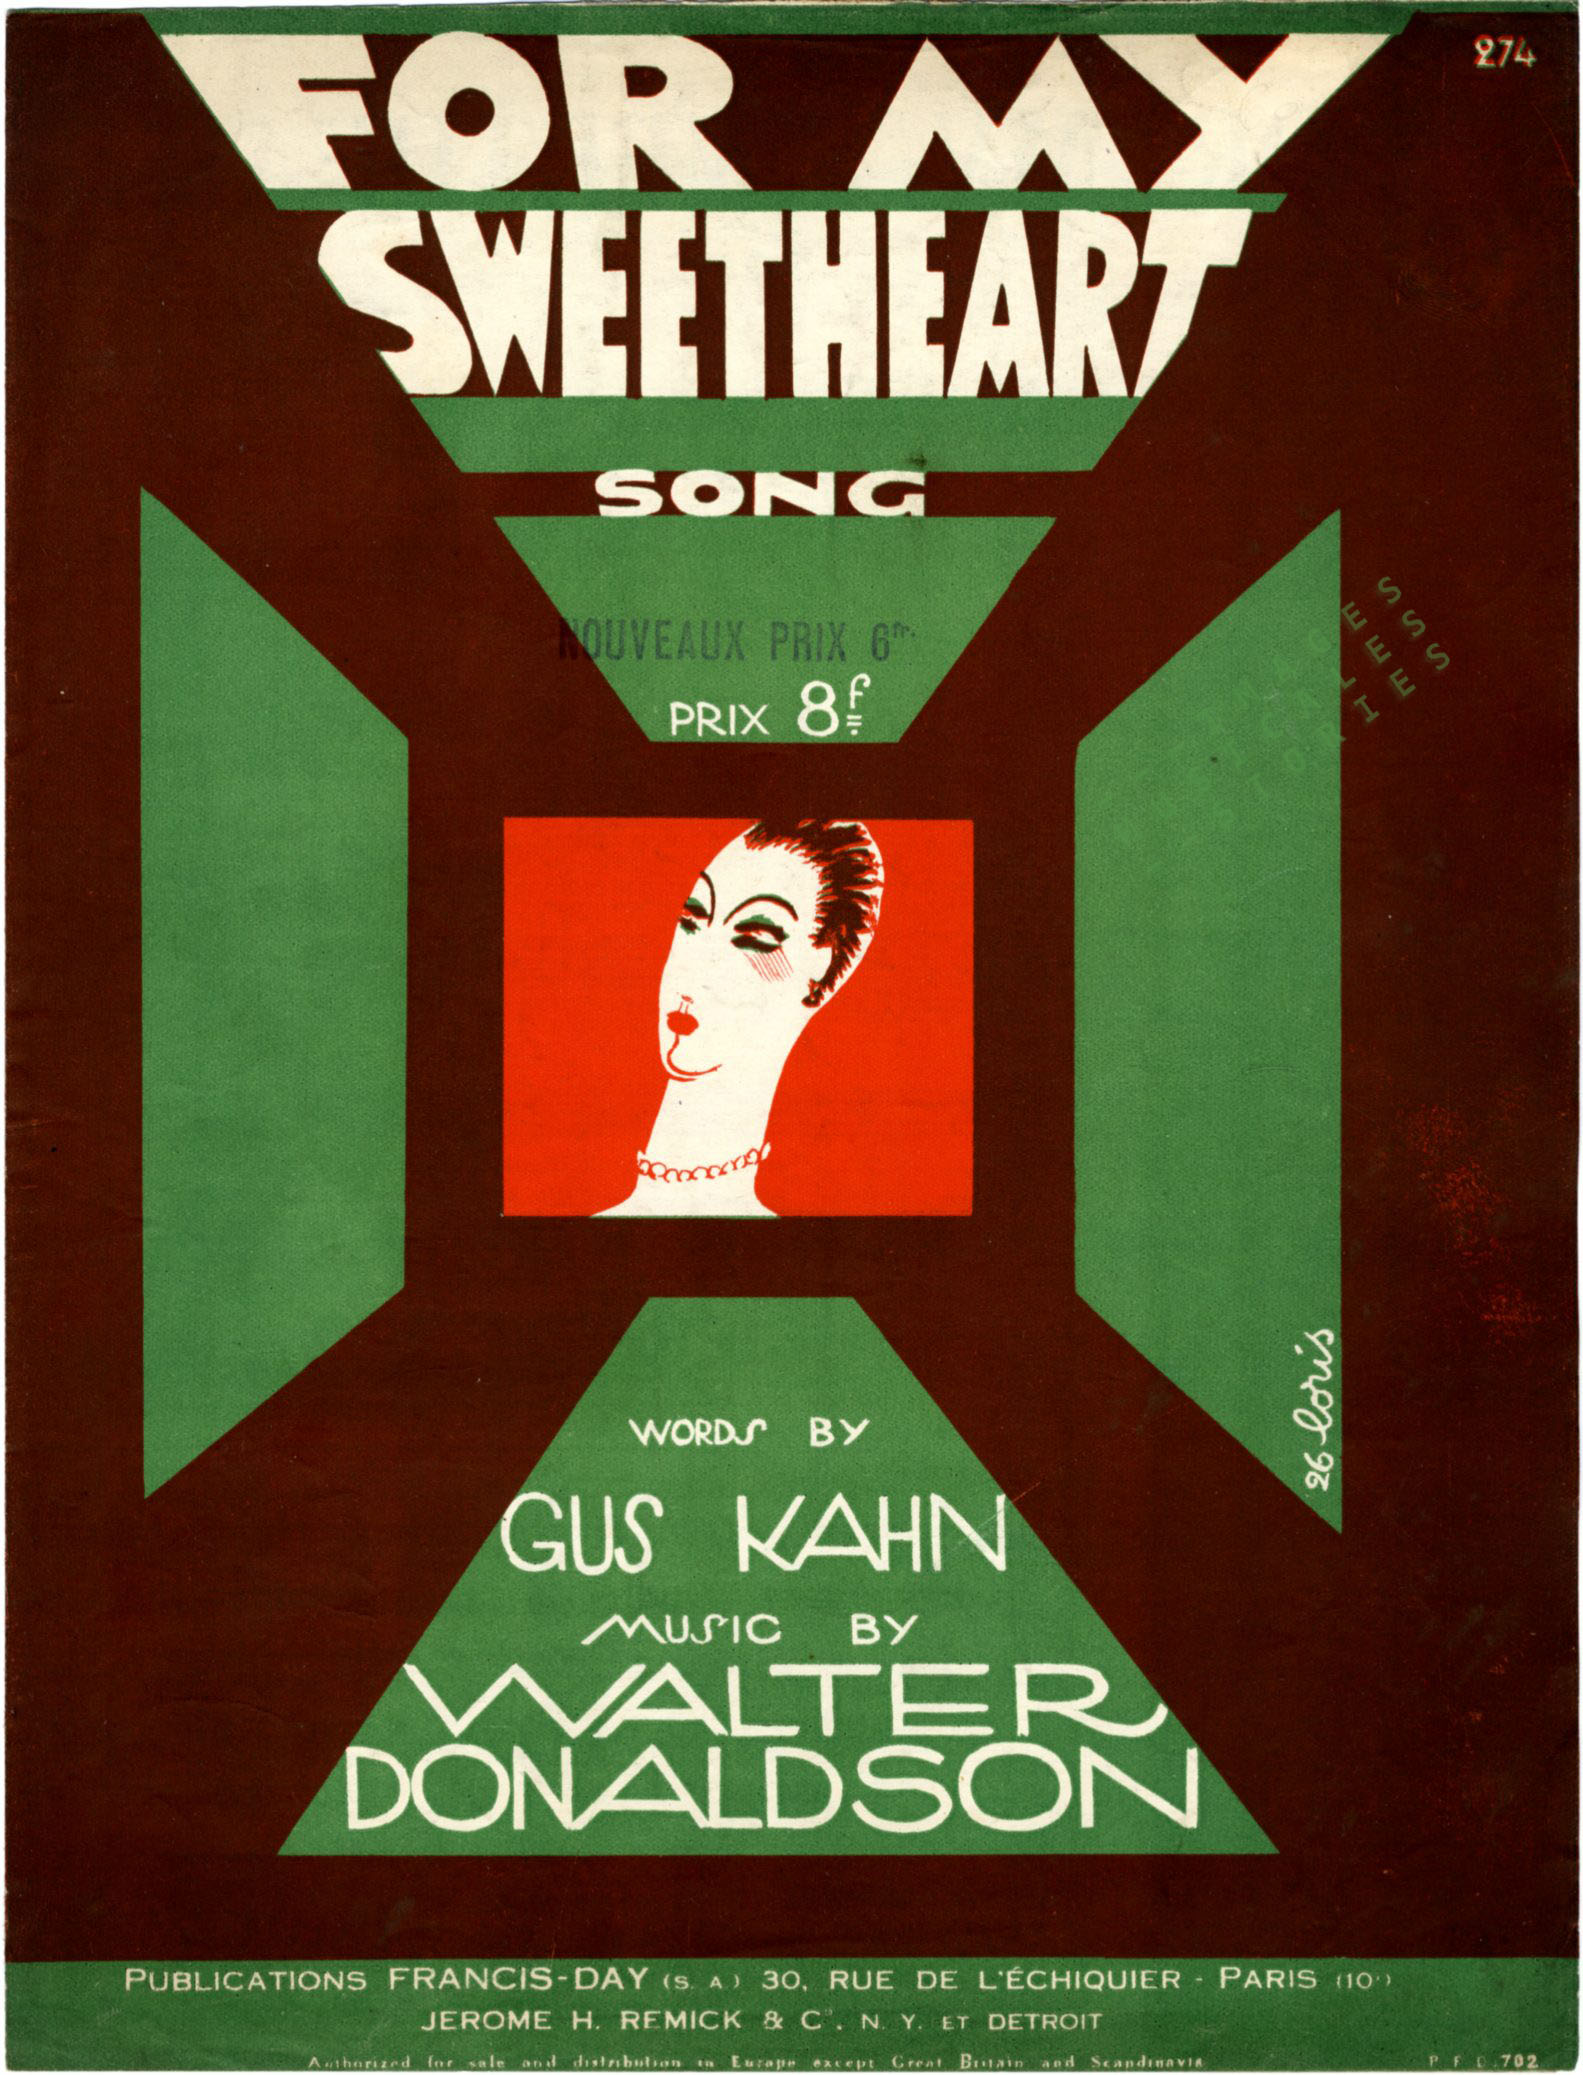 'For My Sweetheart', sheet music cover llustrated by Fabien Loris (1926)